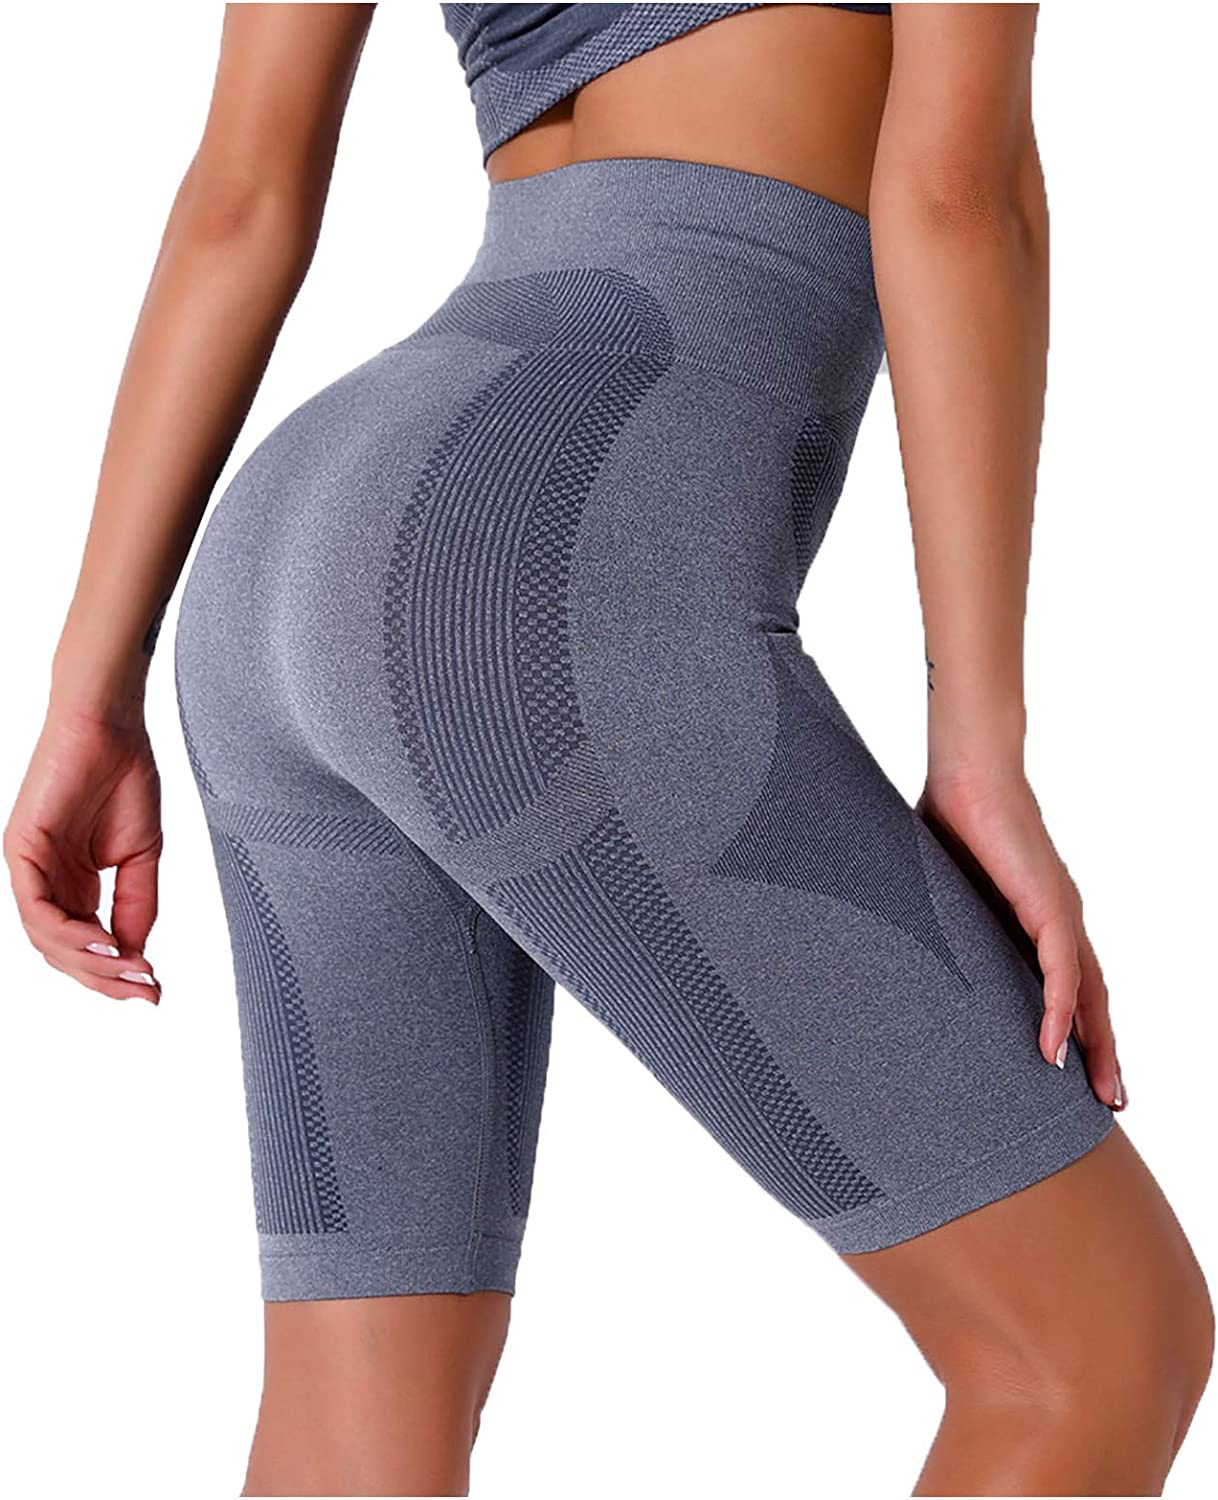 Lovor Yoga Shorts for Women Tummy Control Workout Running Stretch Shorts Cycling Workout Gym Activewear Short Leggings